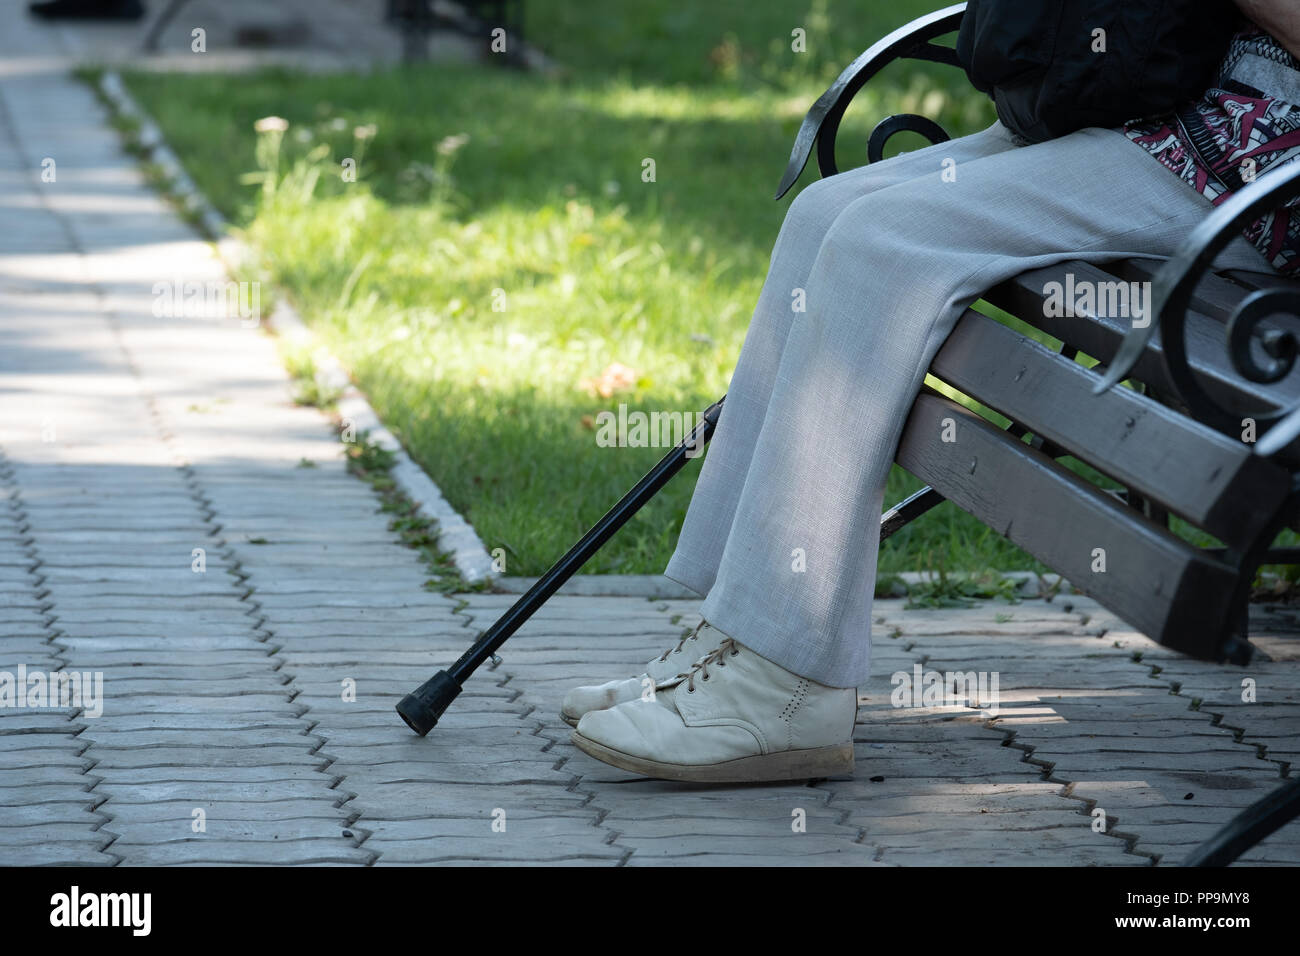 On the image of a foot, a crutch and a bench in the park. On the image of a leg in old pants, shod in old shoes, a crutch and a bench in the park. - Stock Image